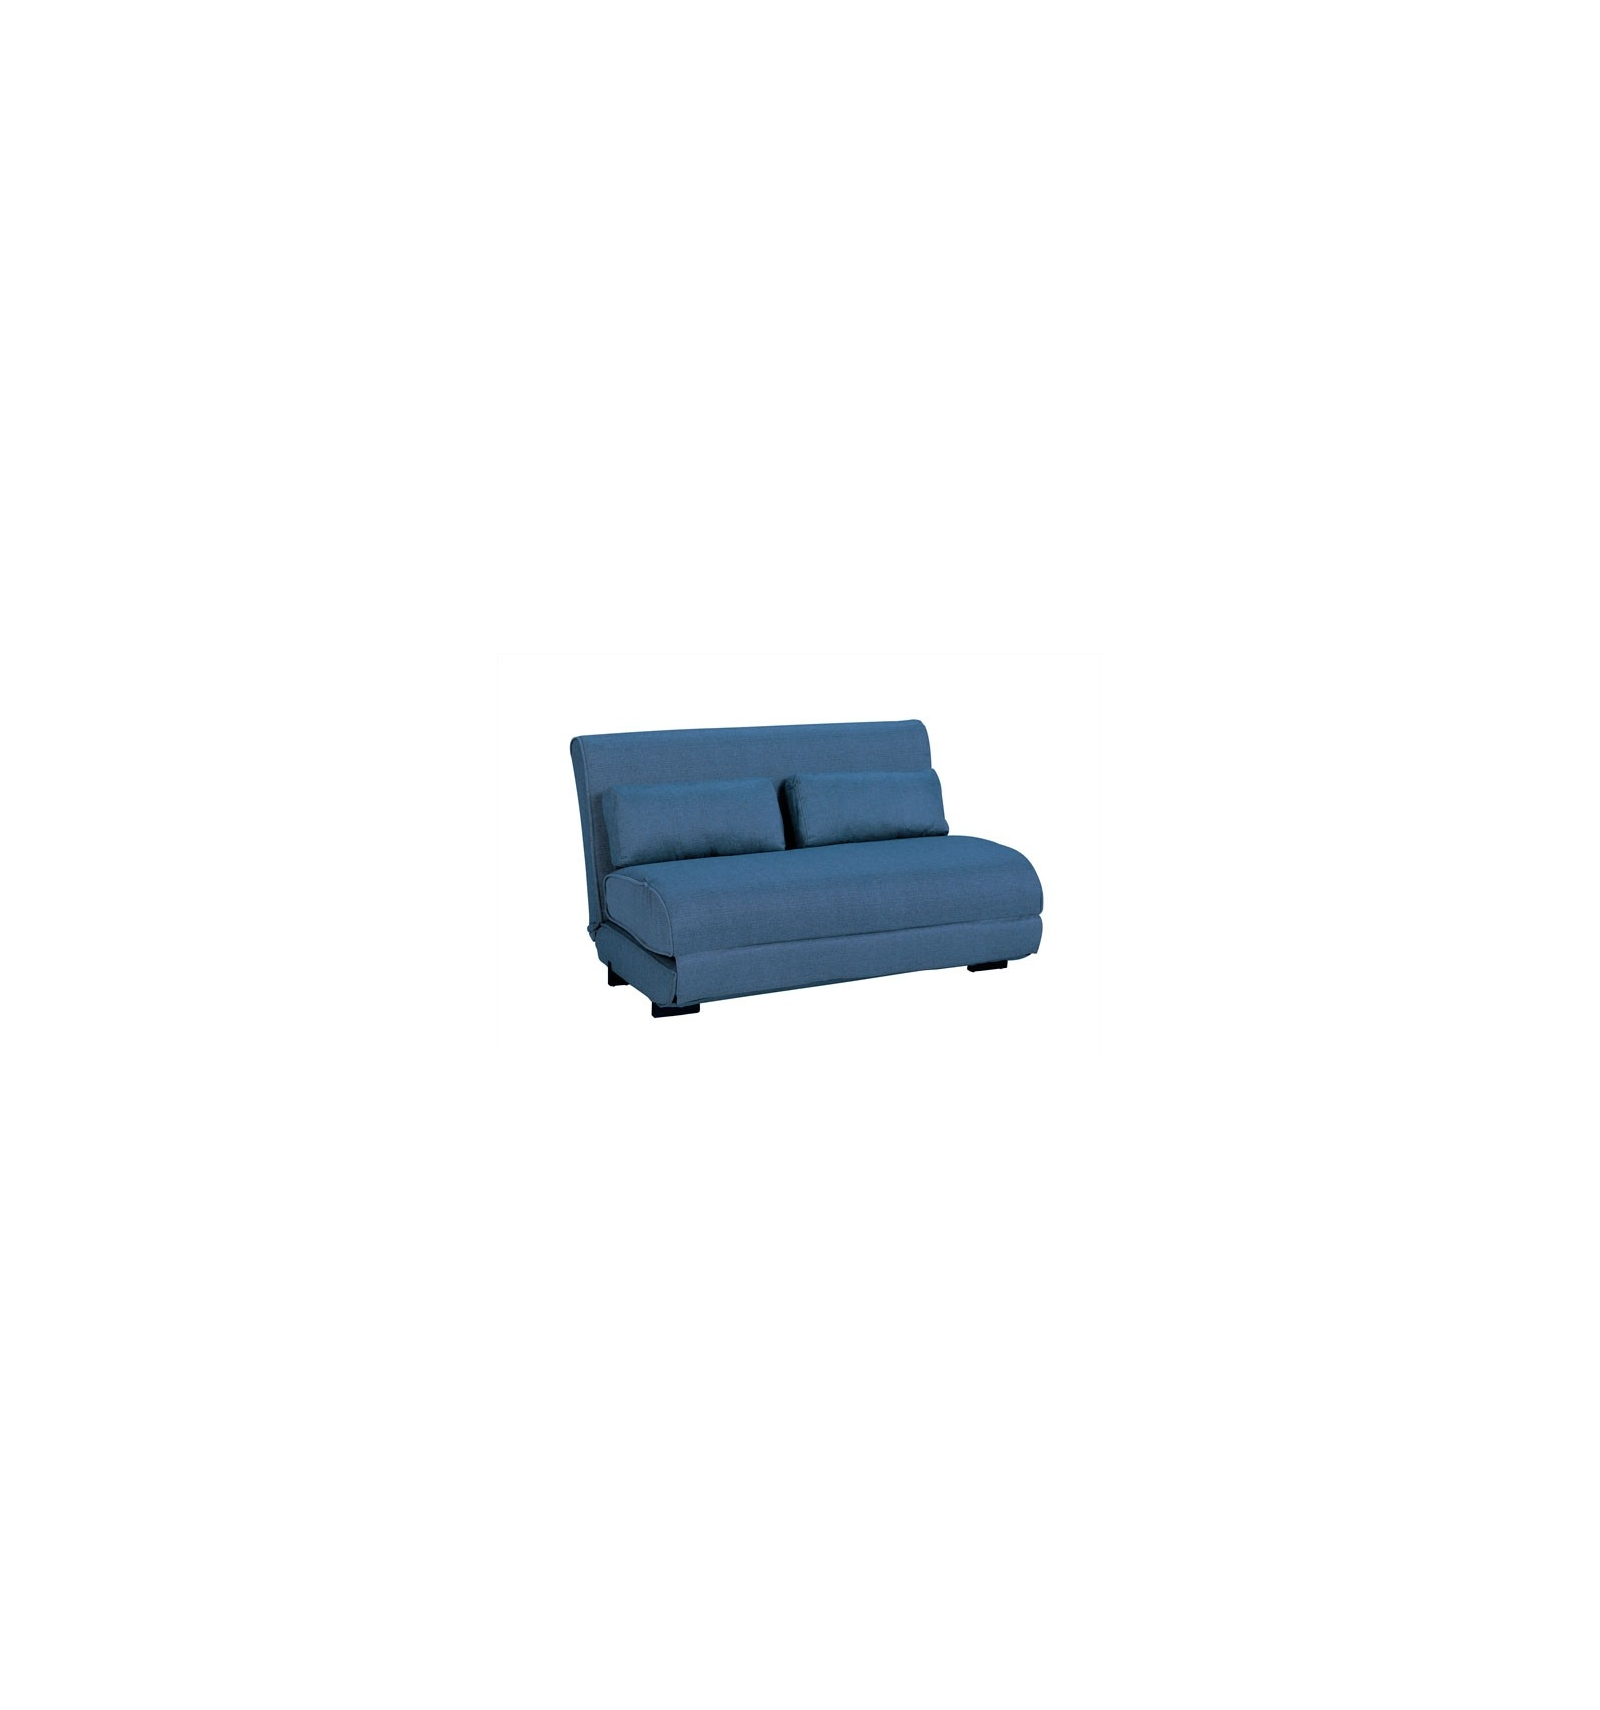 Ikea Sofa Allergie Divano Letto Ikea Futon 28 Images Single Sofa Beds